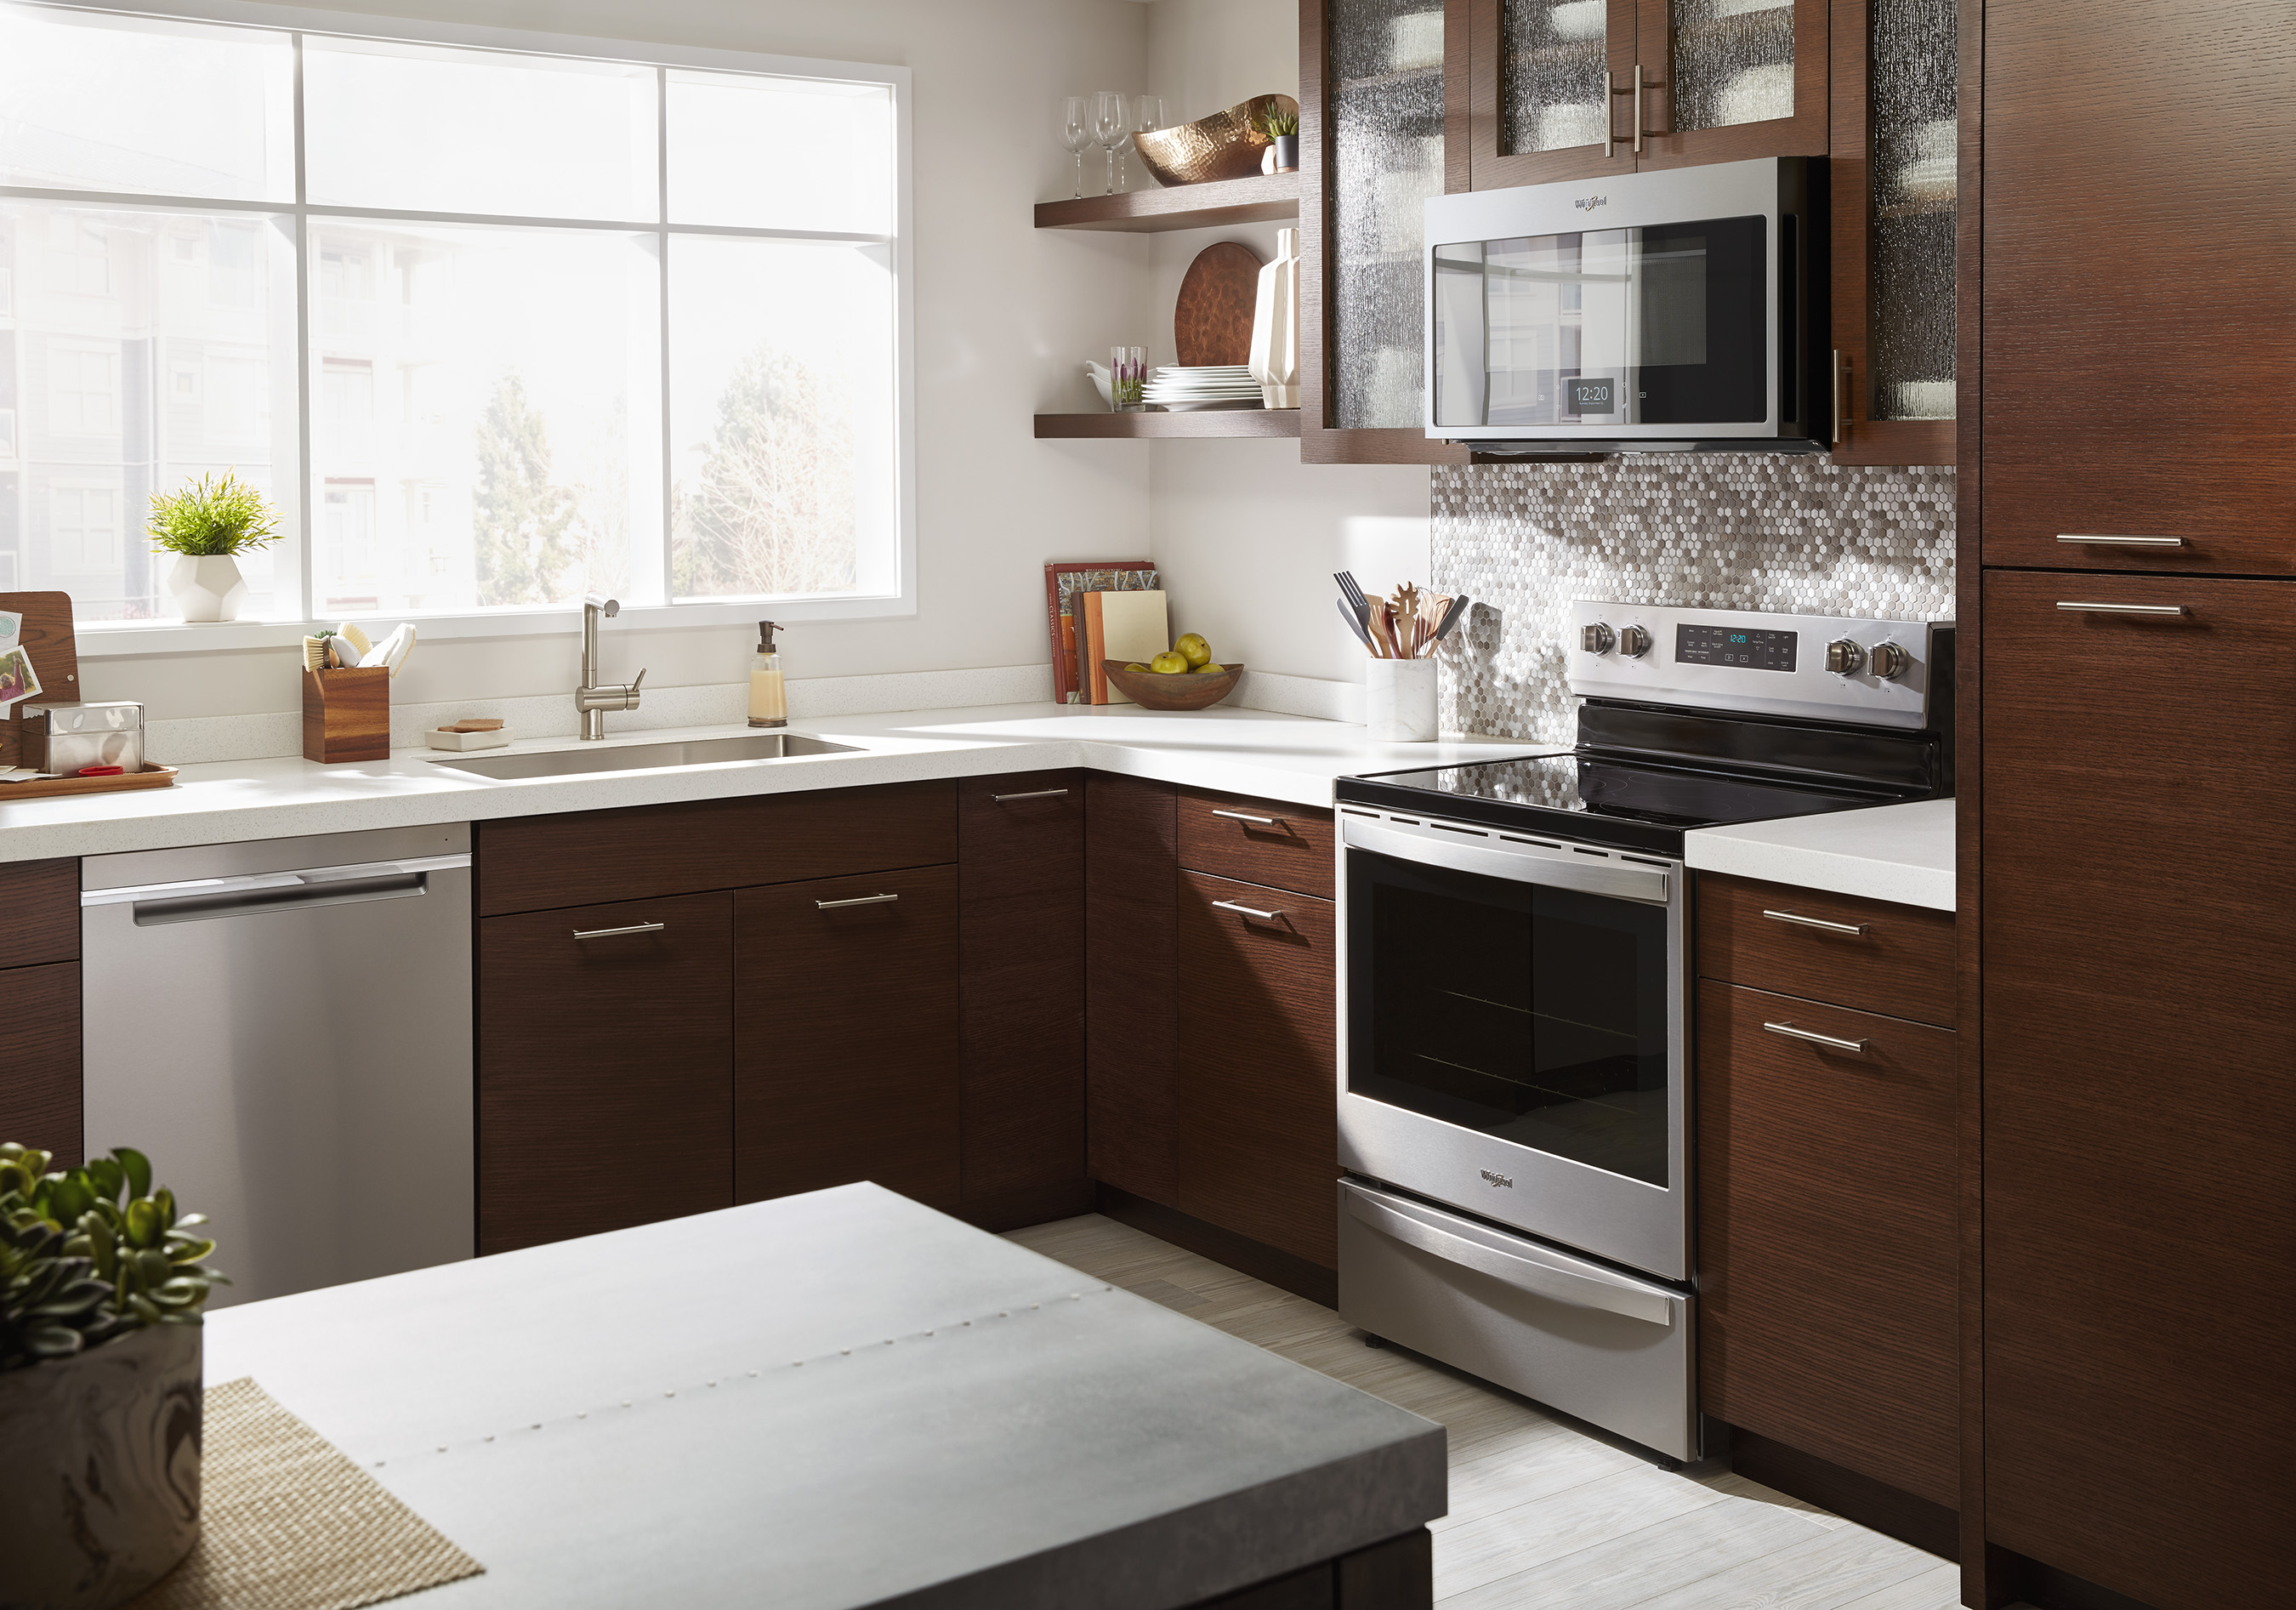 Whirlpool Announces New Range of Apple Watch-Supported Smart Home Appliances